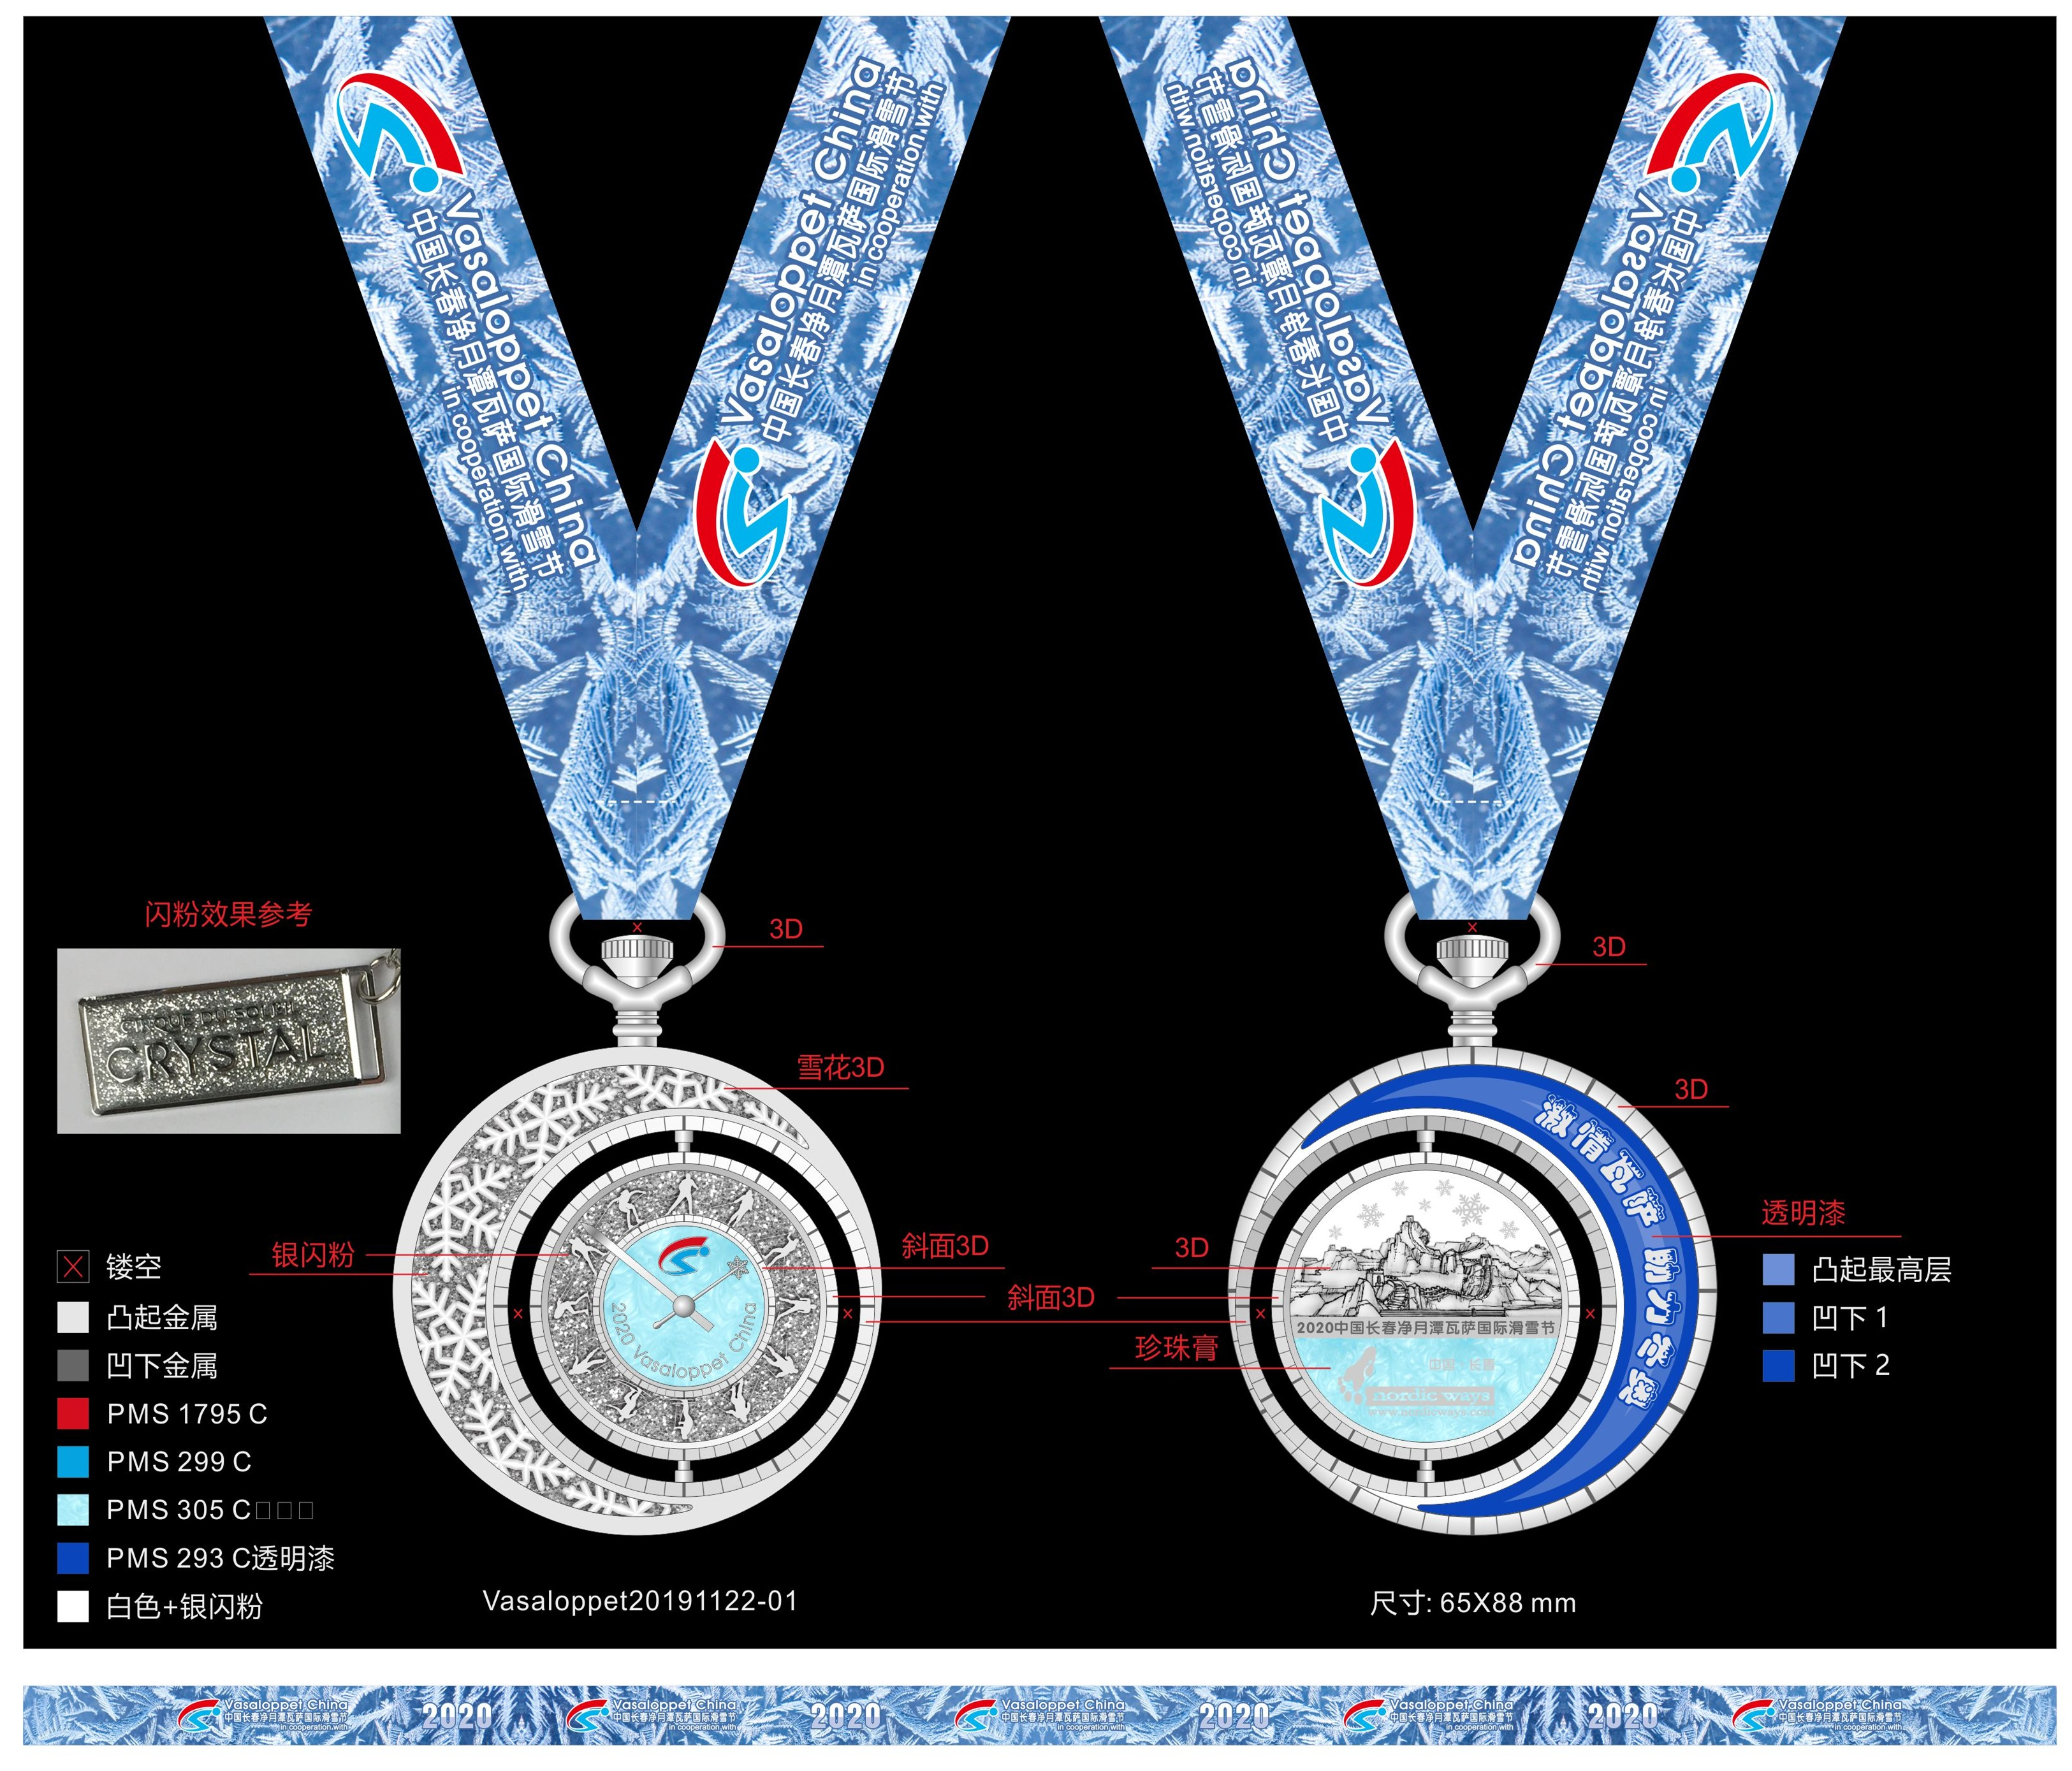 Finishing Medal for Vasaloppet China 2020 is coming!